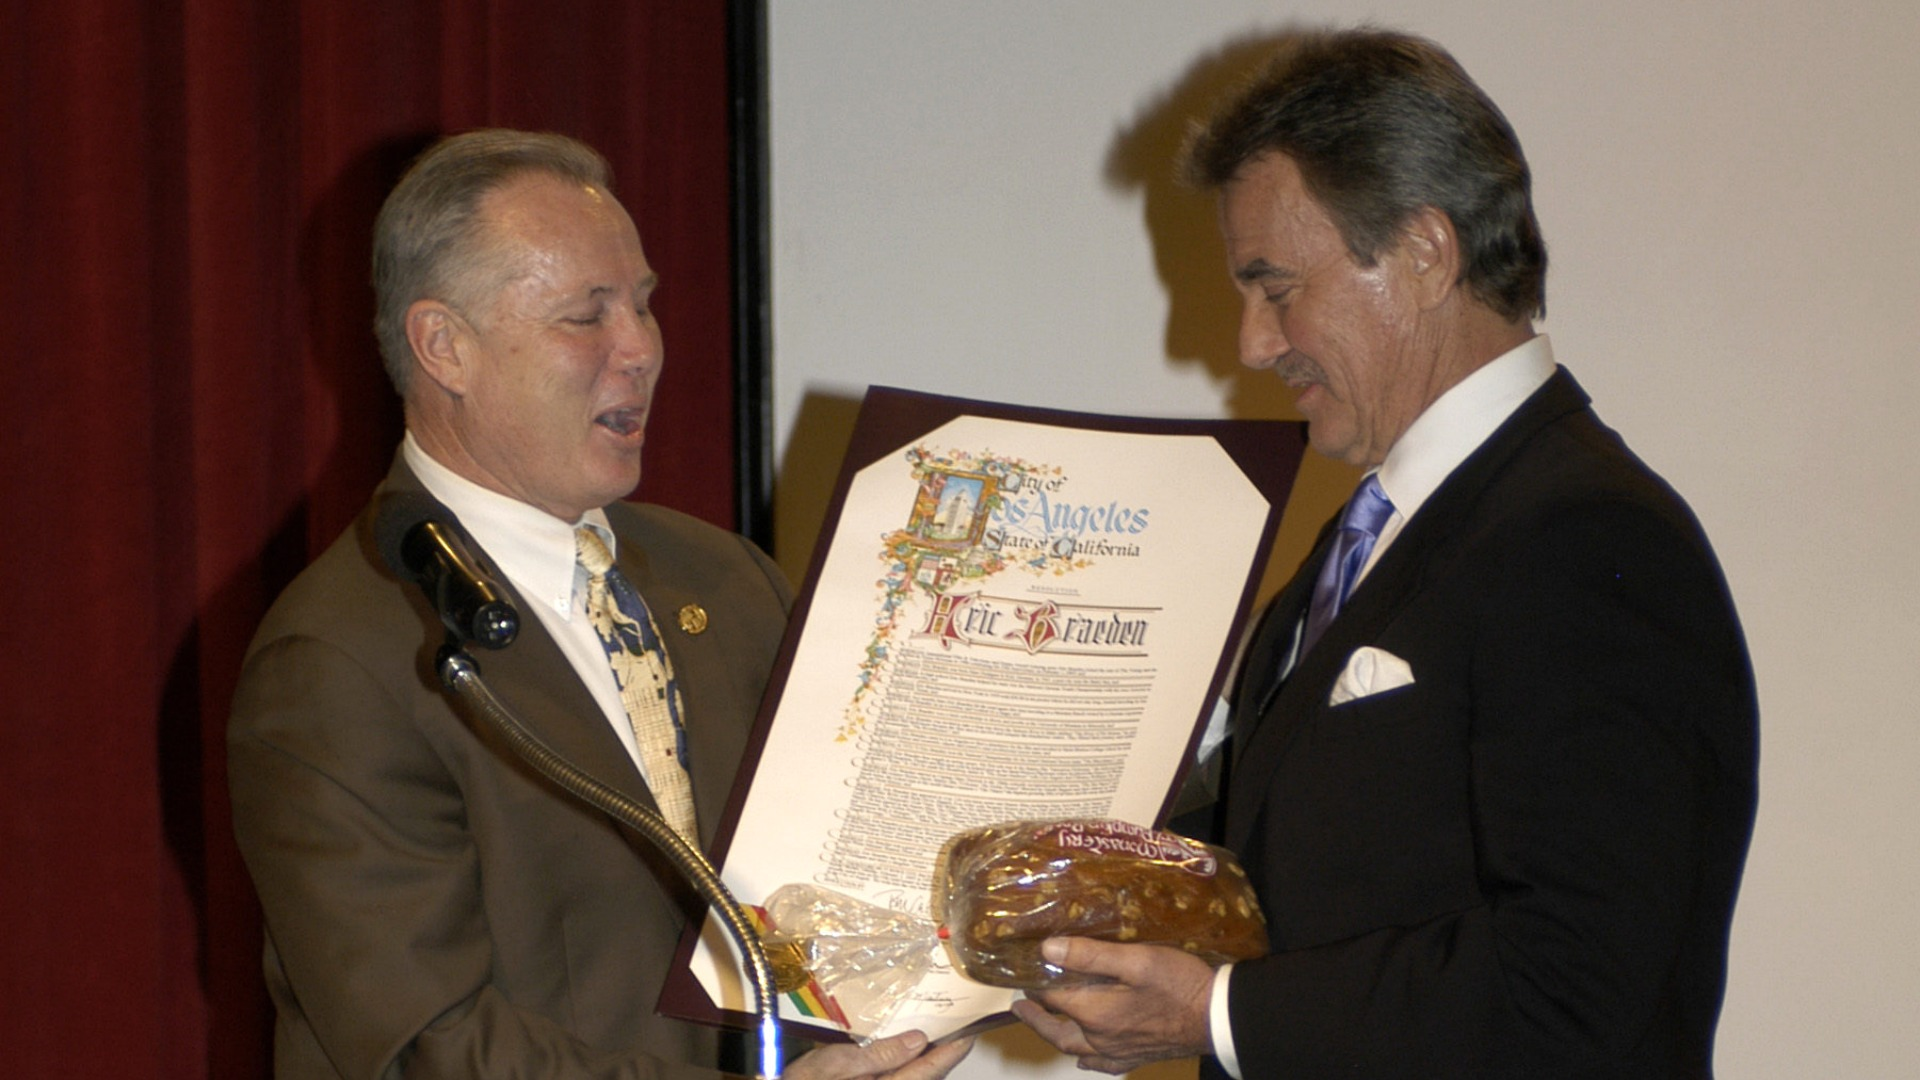 Eric Braeden is honored by the City of Los Angeles.